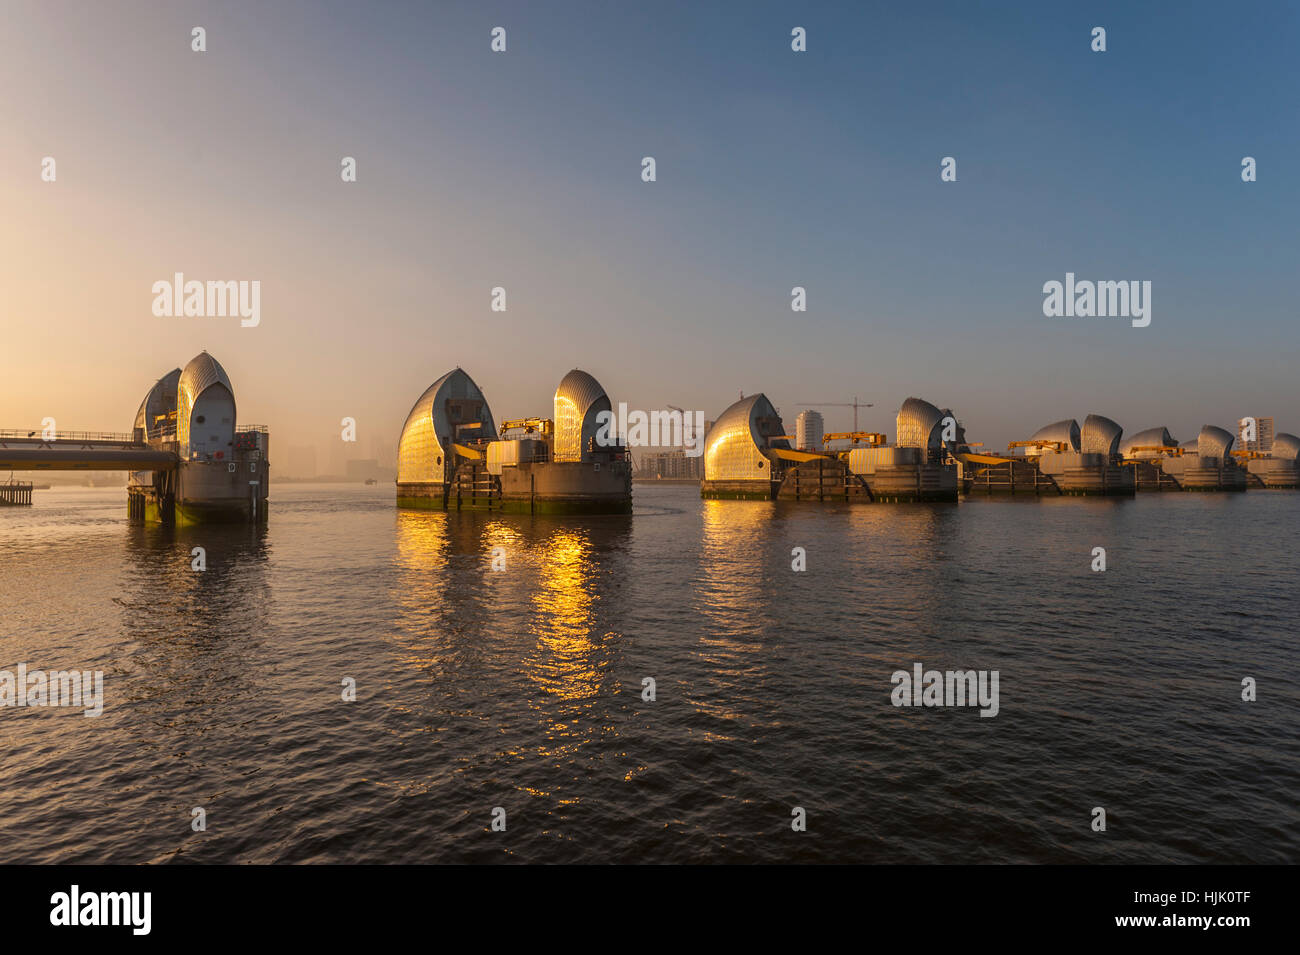 The thames Barrier at Woolwich Kent. in evening light. - Stock Image